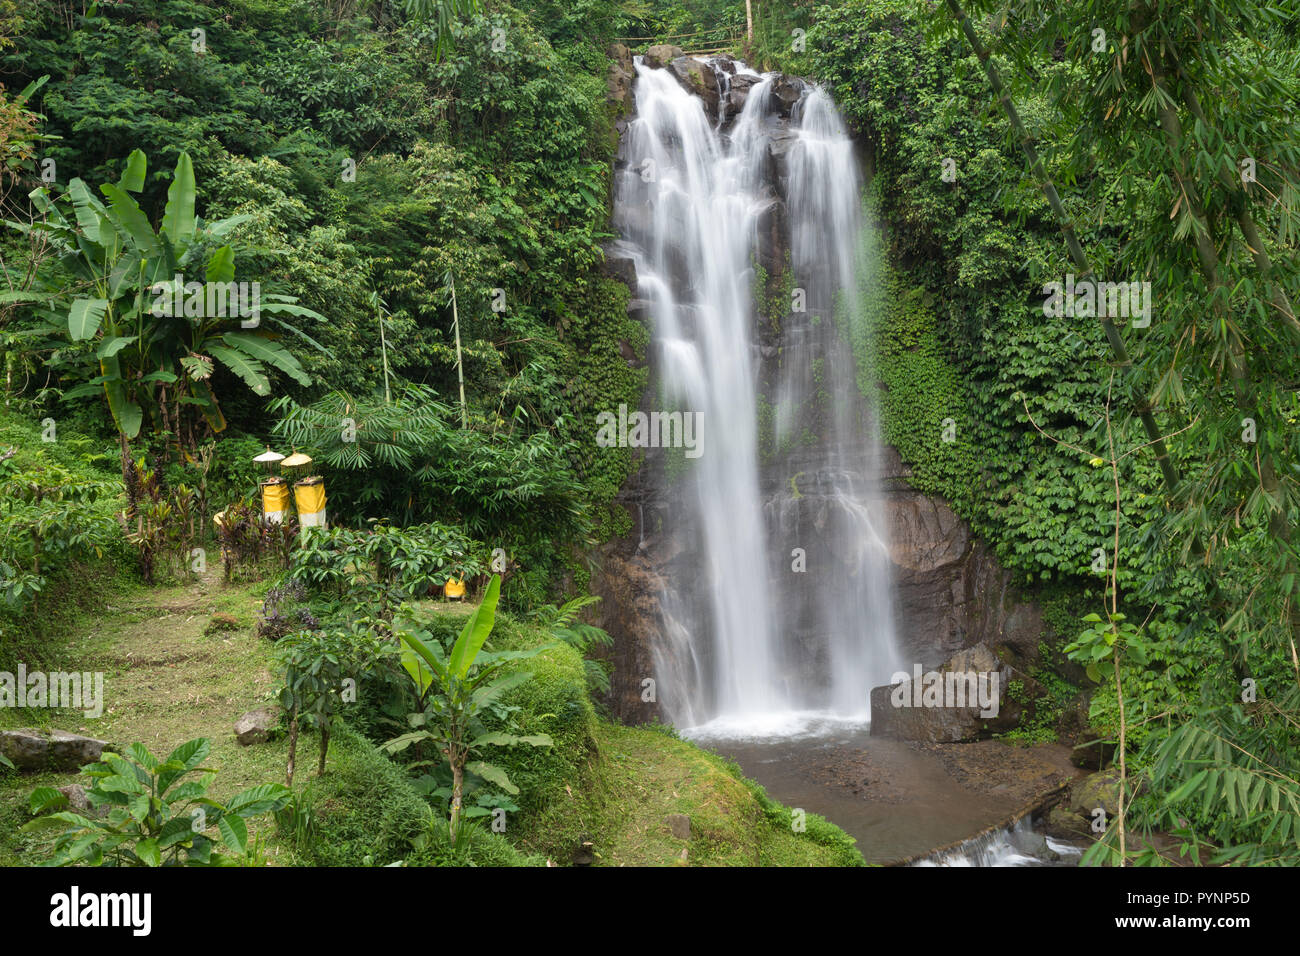 The Golden Valley waterfalll in the Munduk jungle, Bali, Indonesia - Stock Image